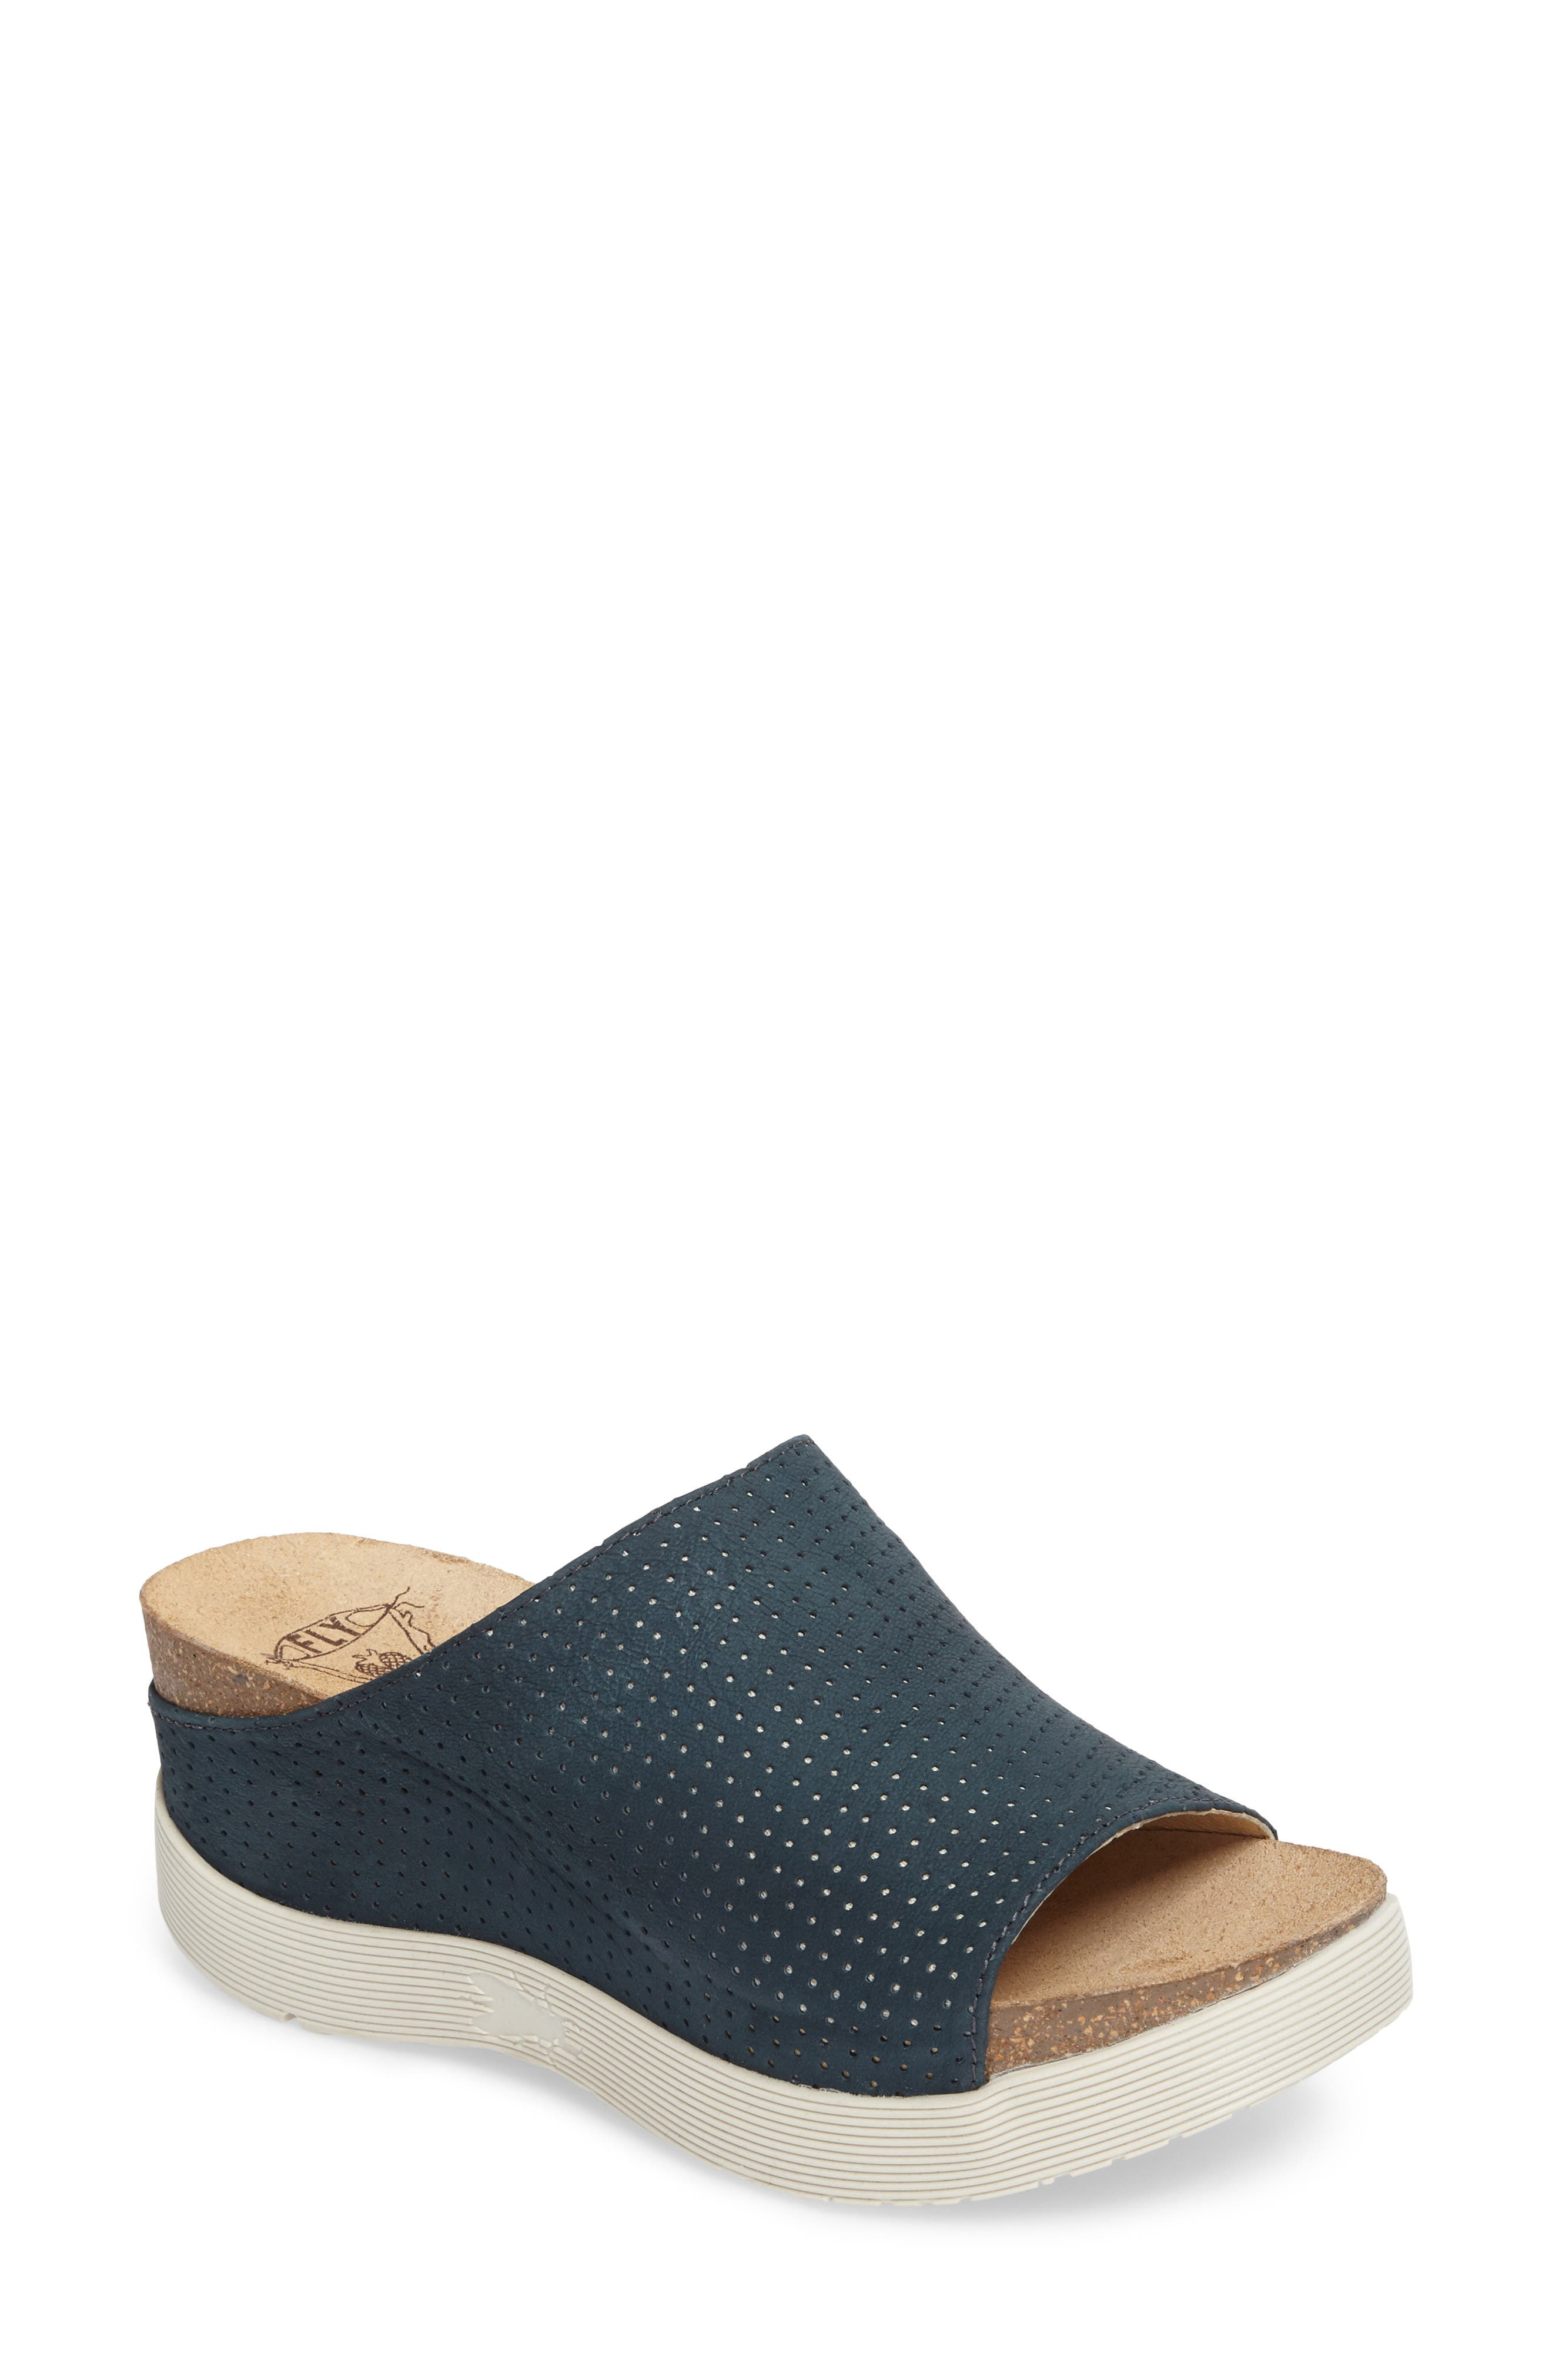 Fly London Whin Platform Sandal - Blue